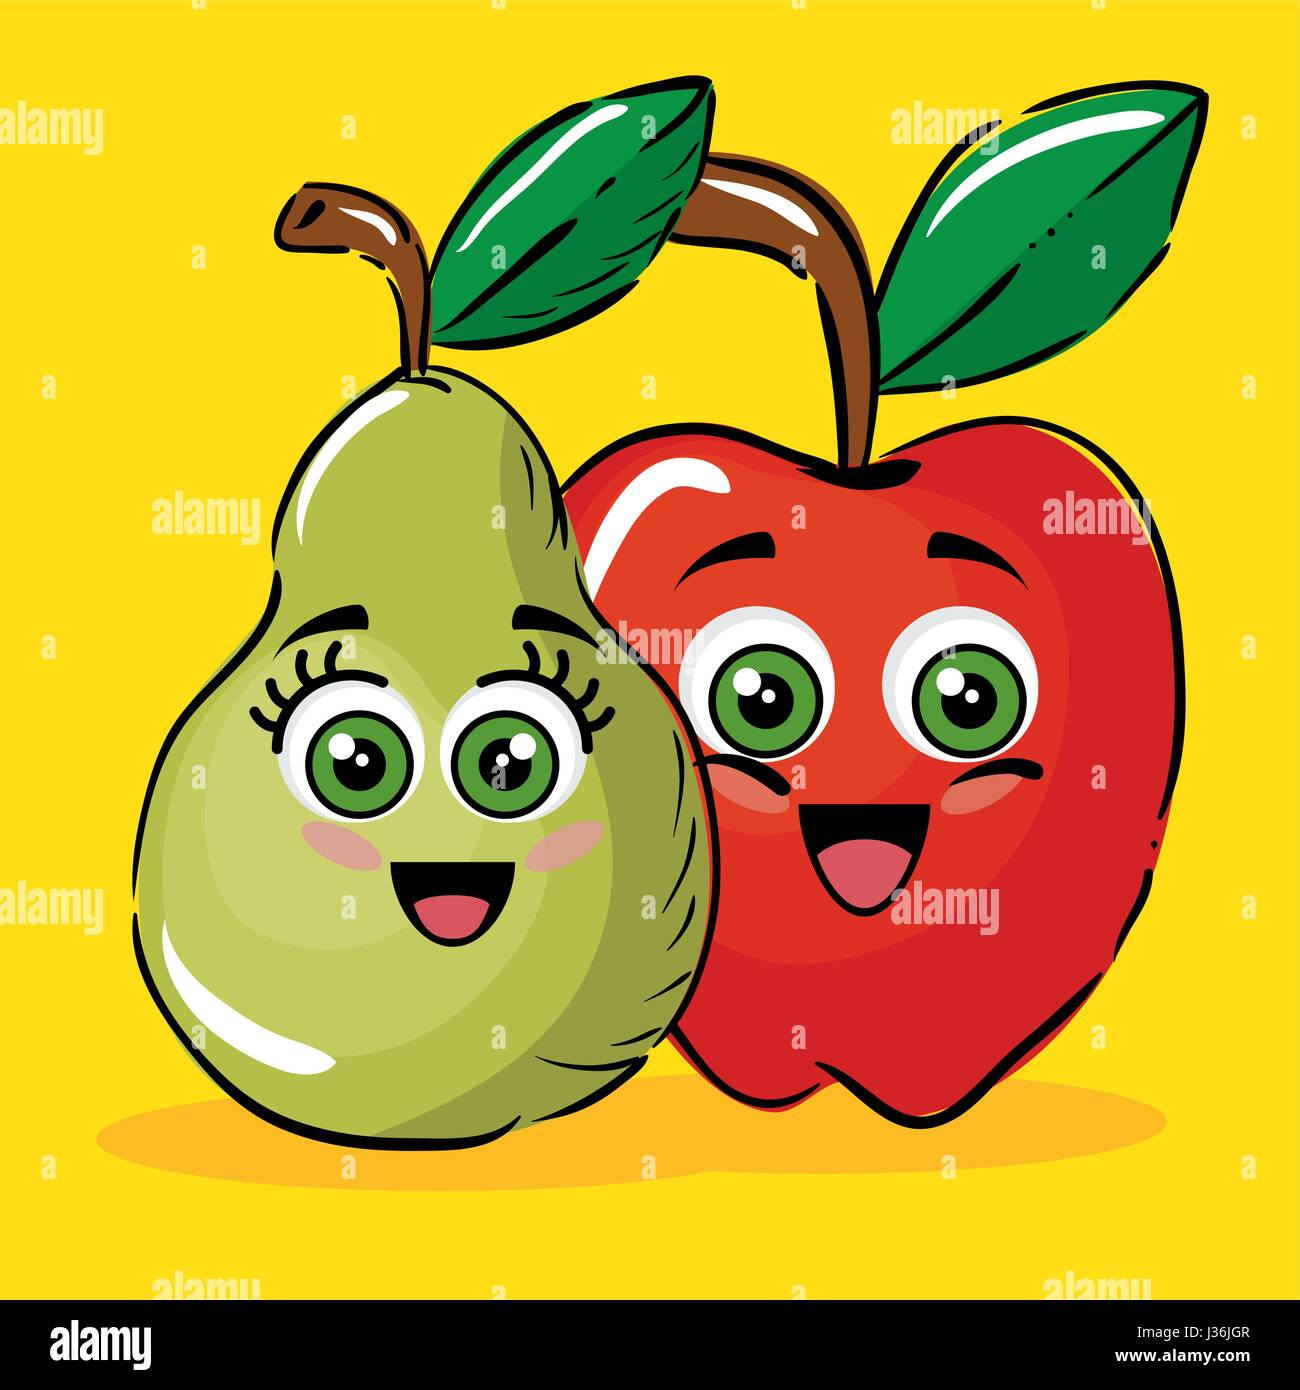 birne und apfel obst comic figuren vektor abbildung bild 139673207 alamy. Black Bedroom Furniture Sets. Home Design Ideas